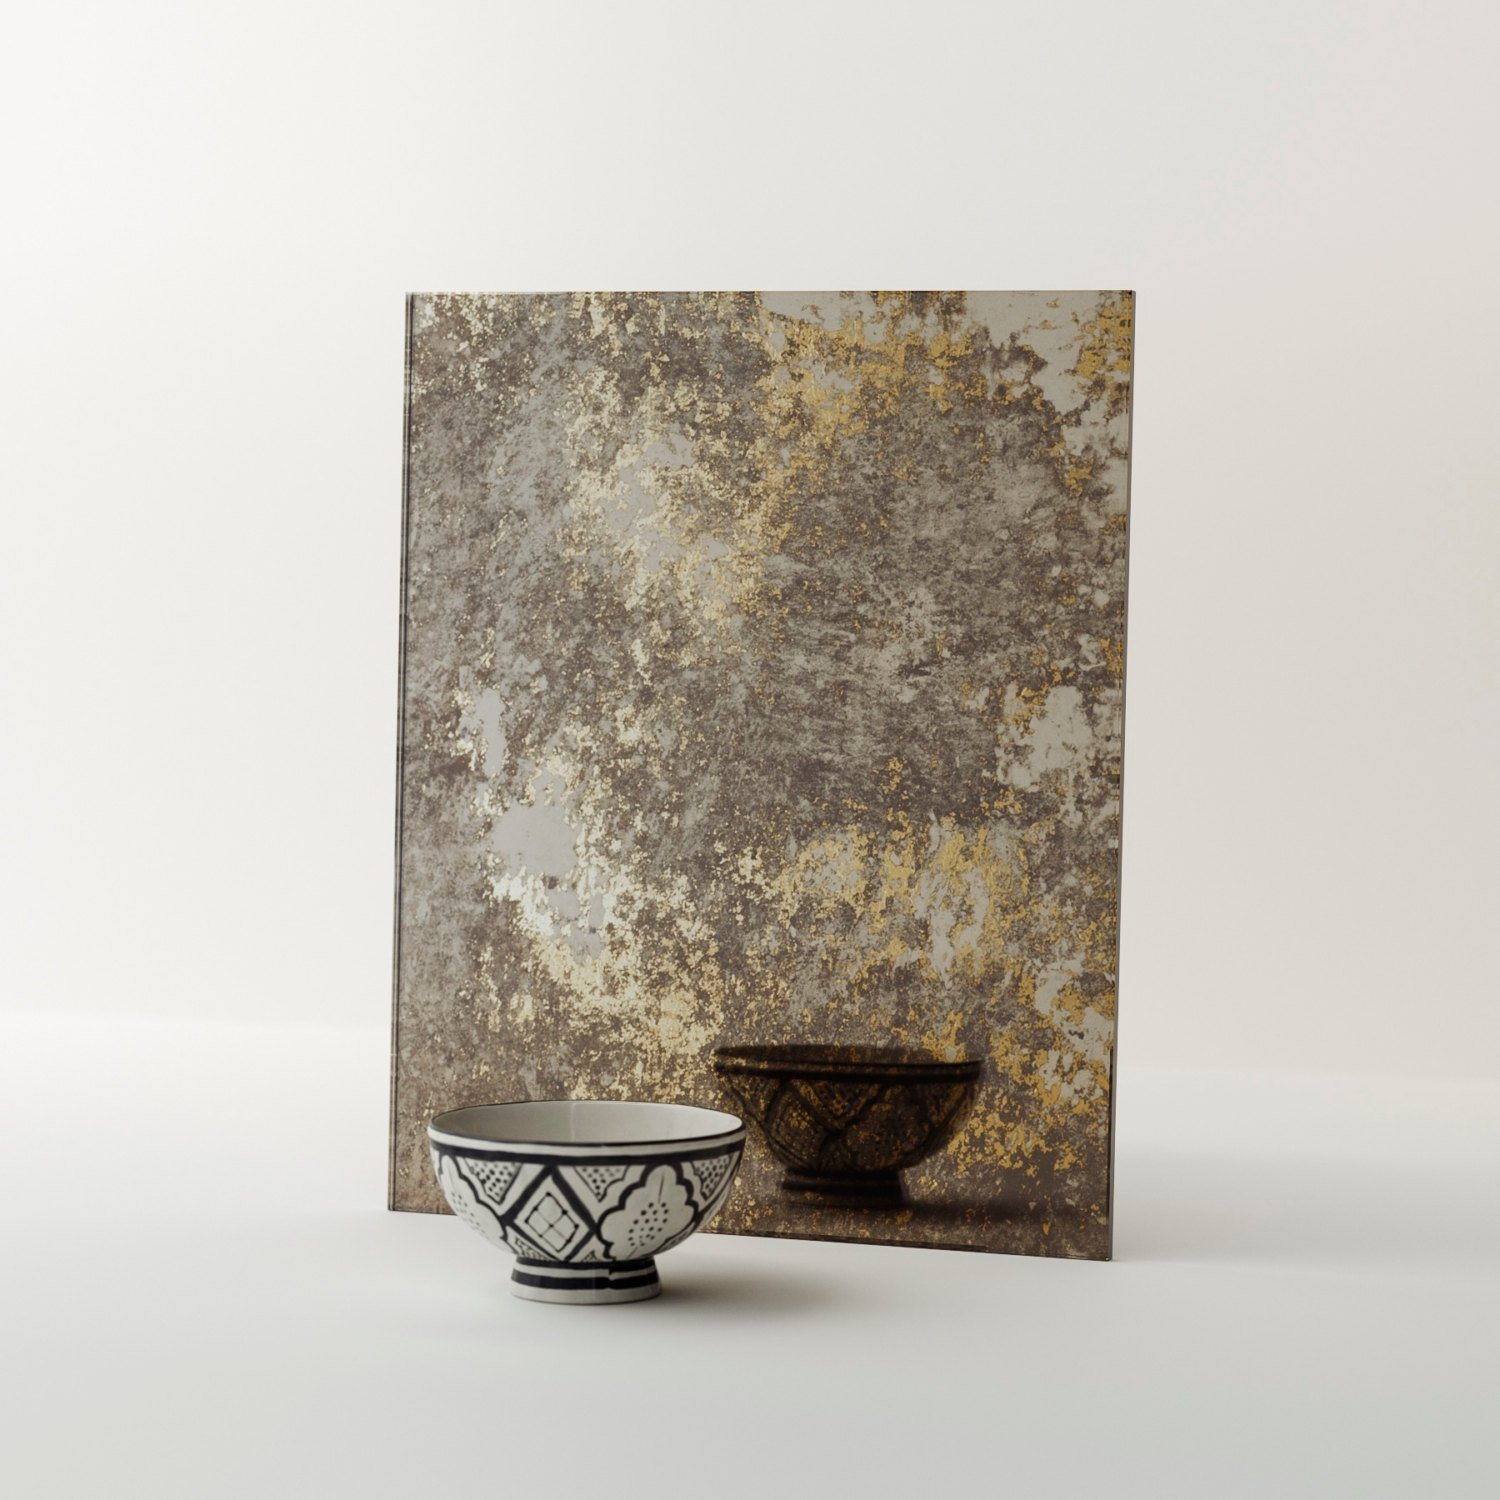 Golden Antiqued Mirror Available via MirrorCoop.com